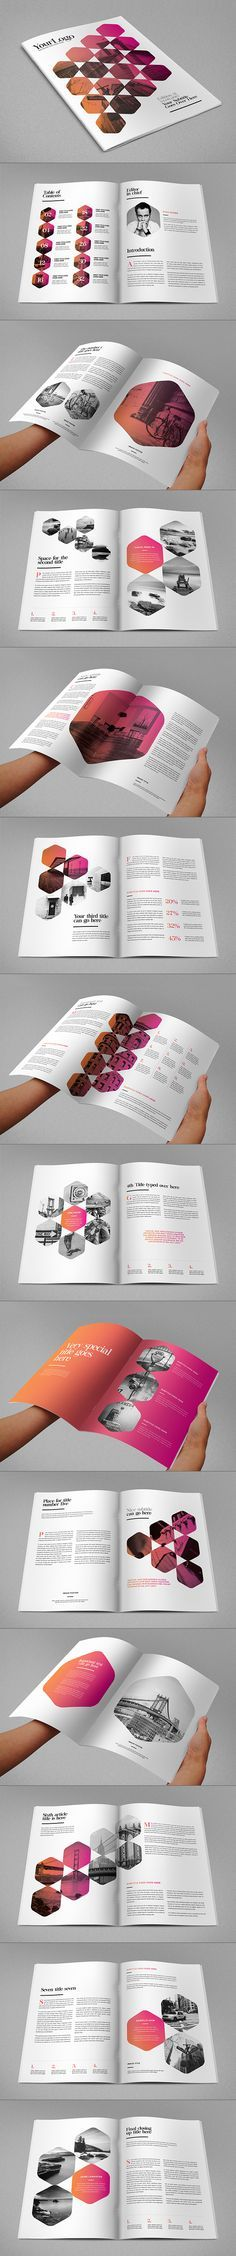 Minimal Modern Clean Magazine. Download here: http://graphicriver.net/item/minimal-modern-clean-magazine/11295103?ref=abradesign #design #magazine Latest Modern Web Designs. http://webworksagency.com